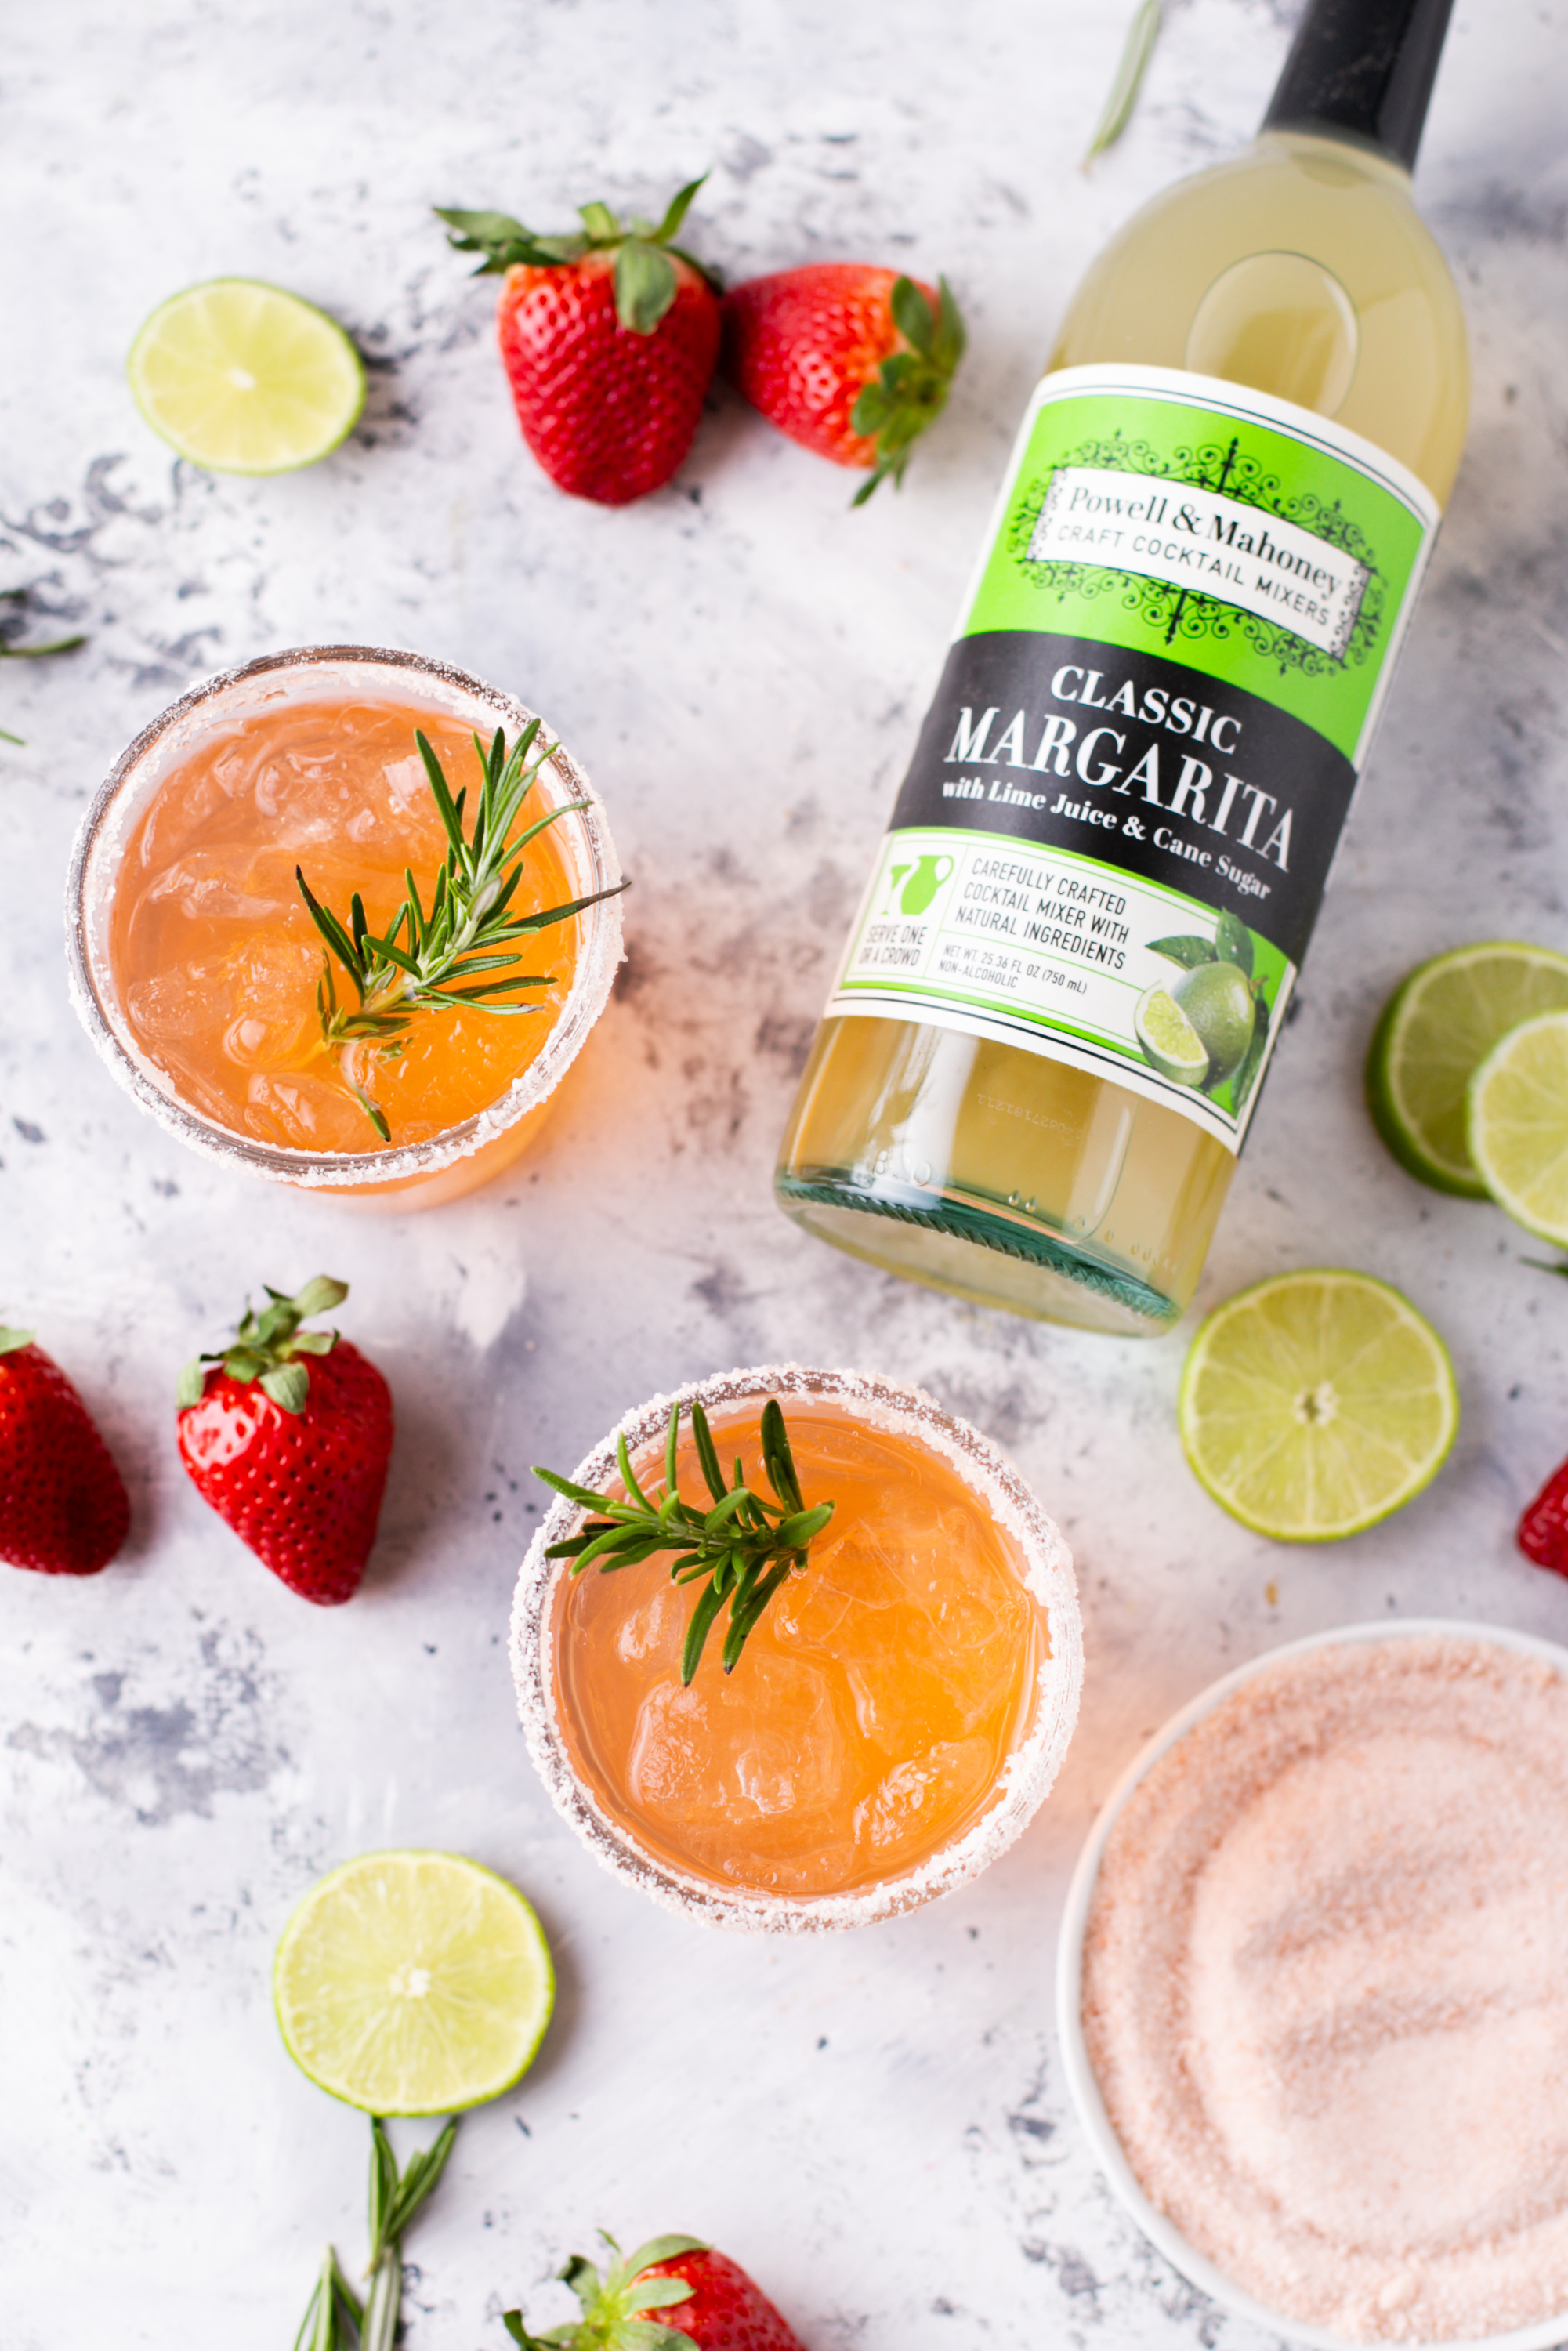 Powell Mahoney Strawberry Rosemary Margarita